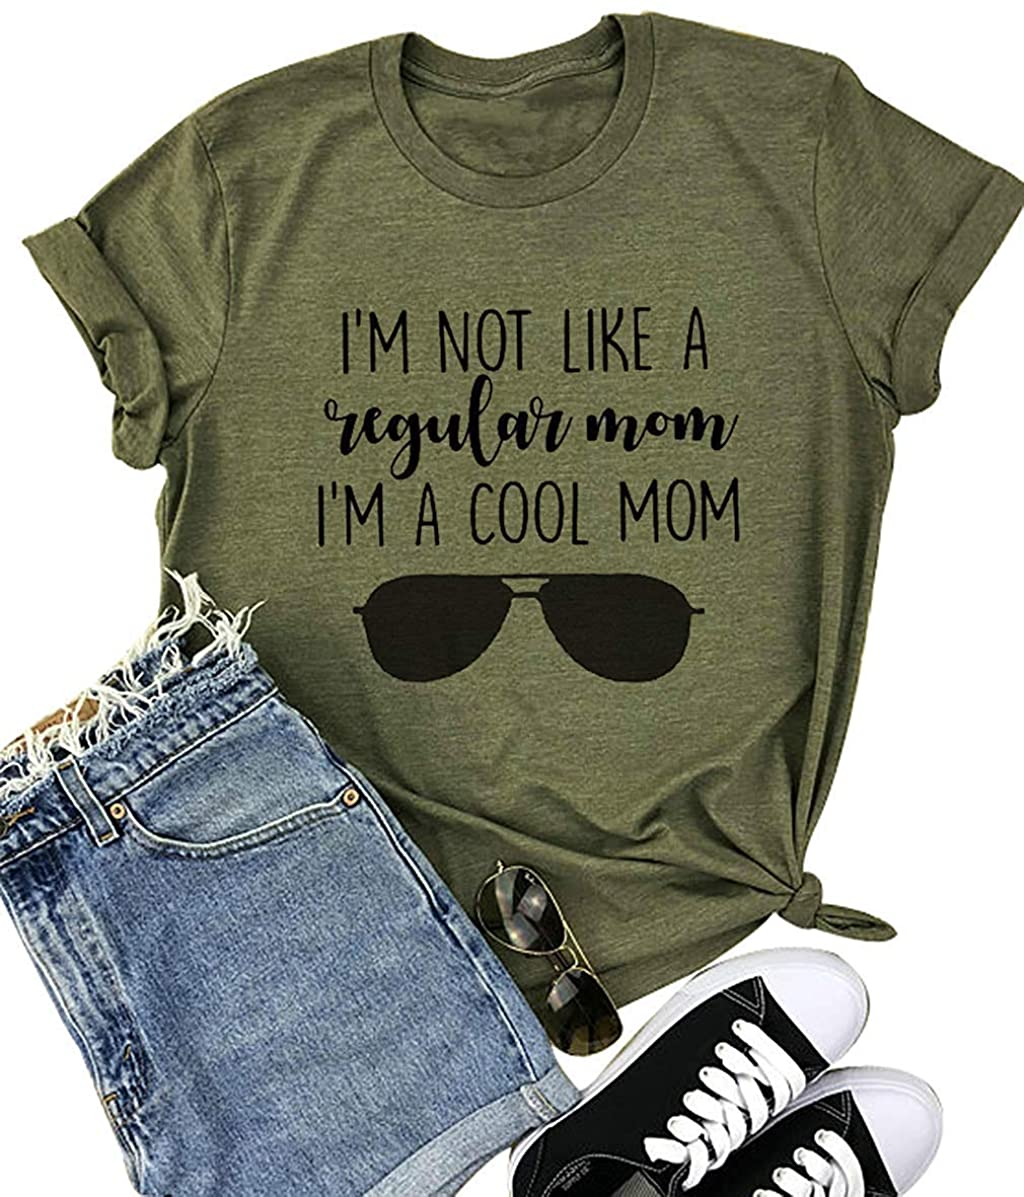 TAOHONG Mom Shirts with Sayings Women I'm A Cool Mom Shirts Mom Graphic Tee Funny Short Sleeve Summer Top Tee Gifts Shirt